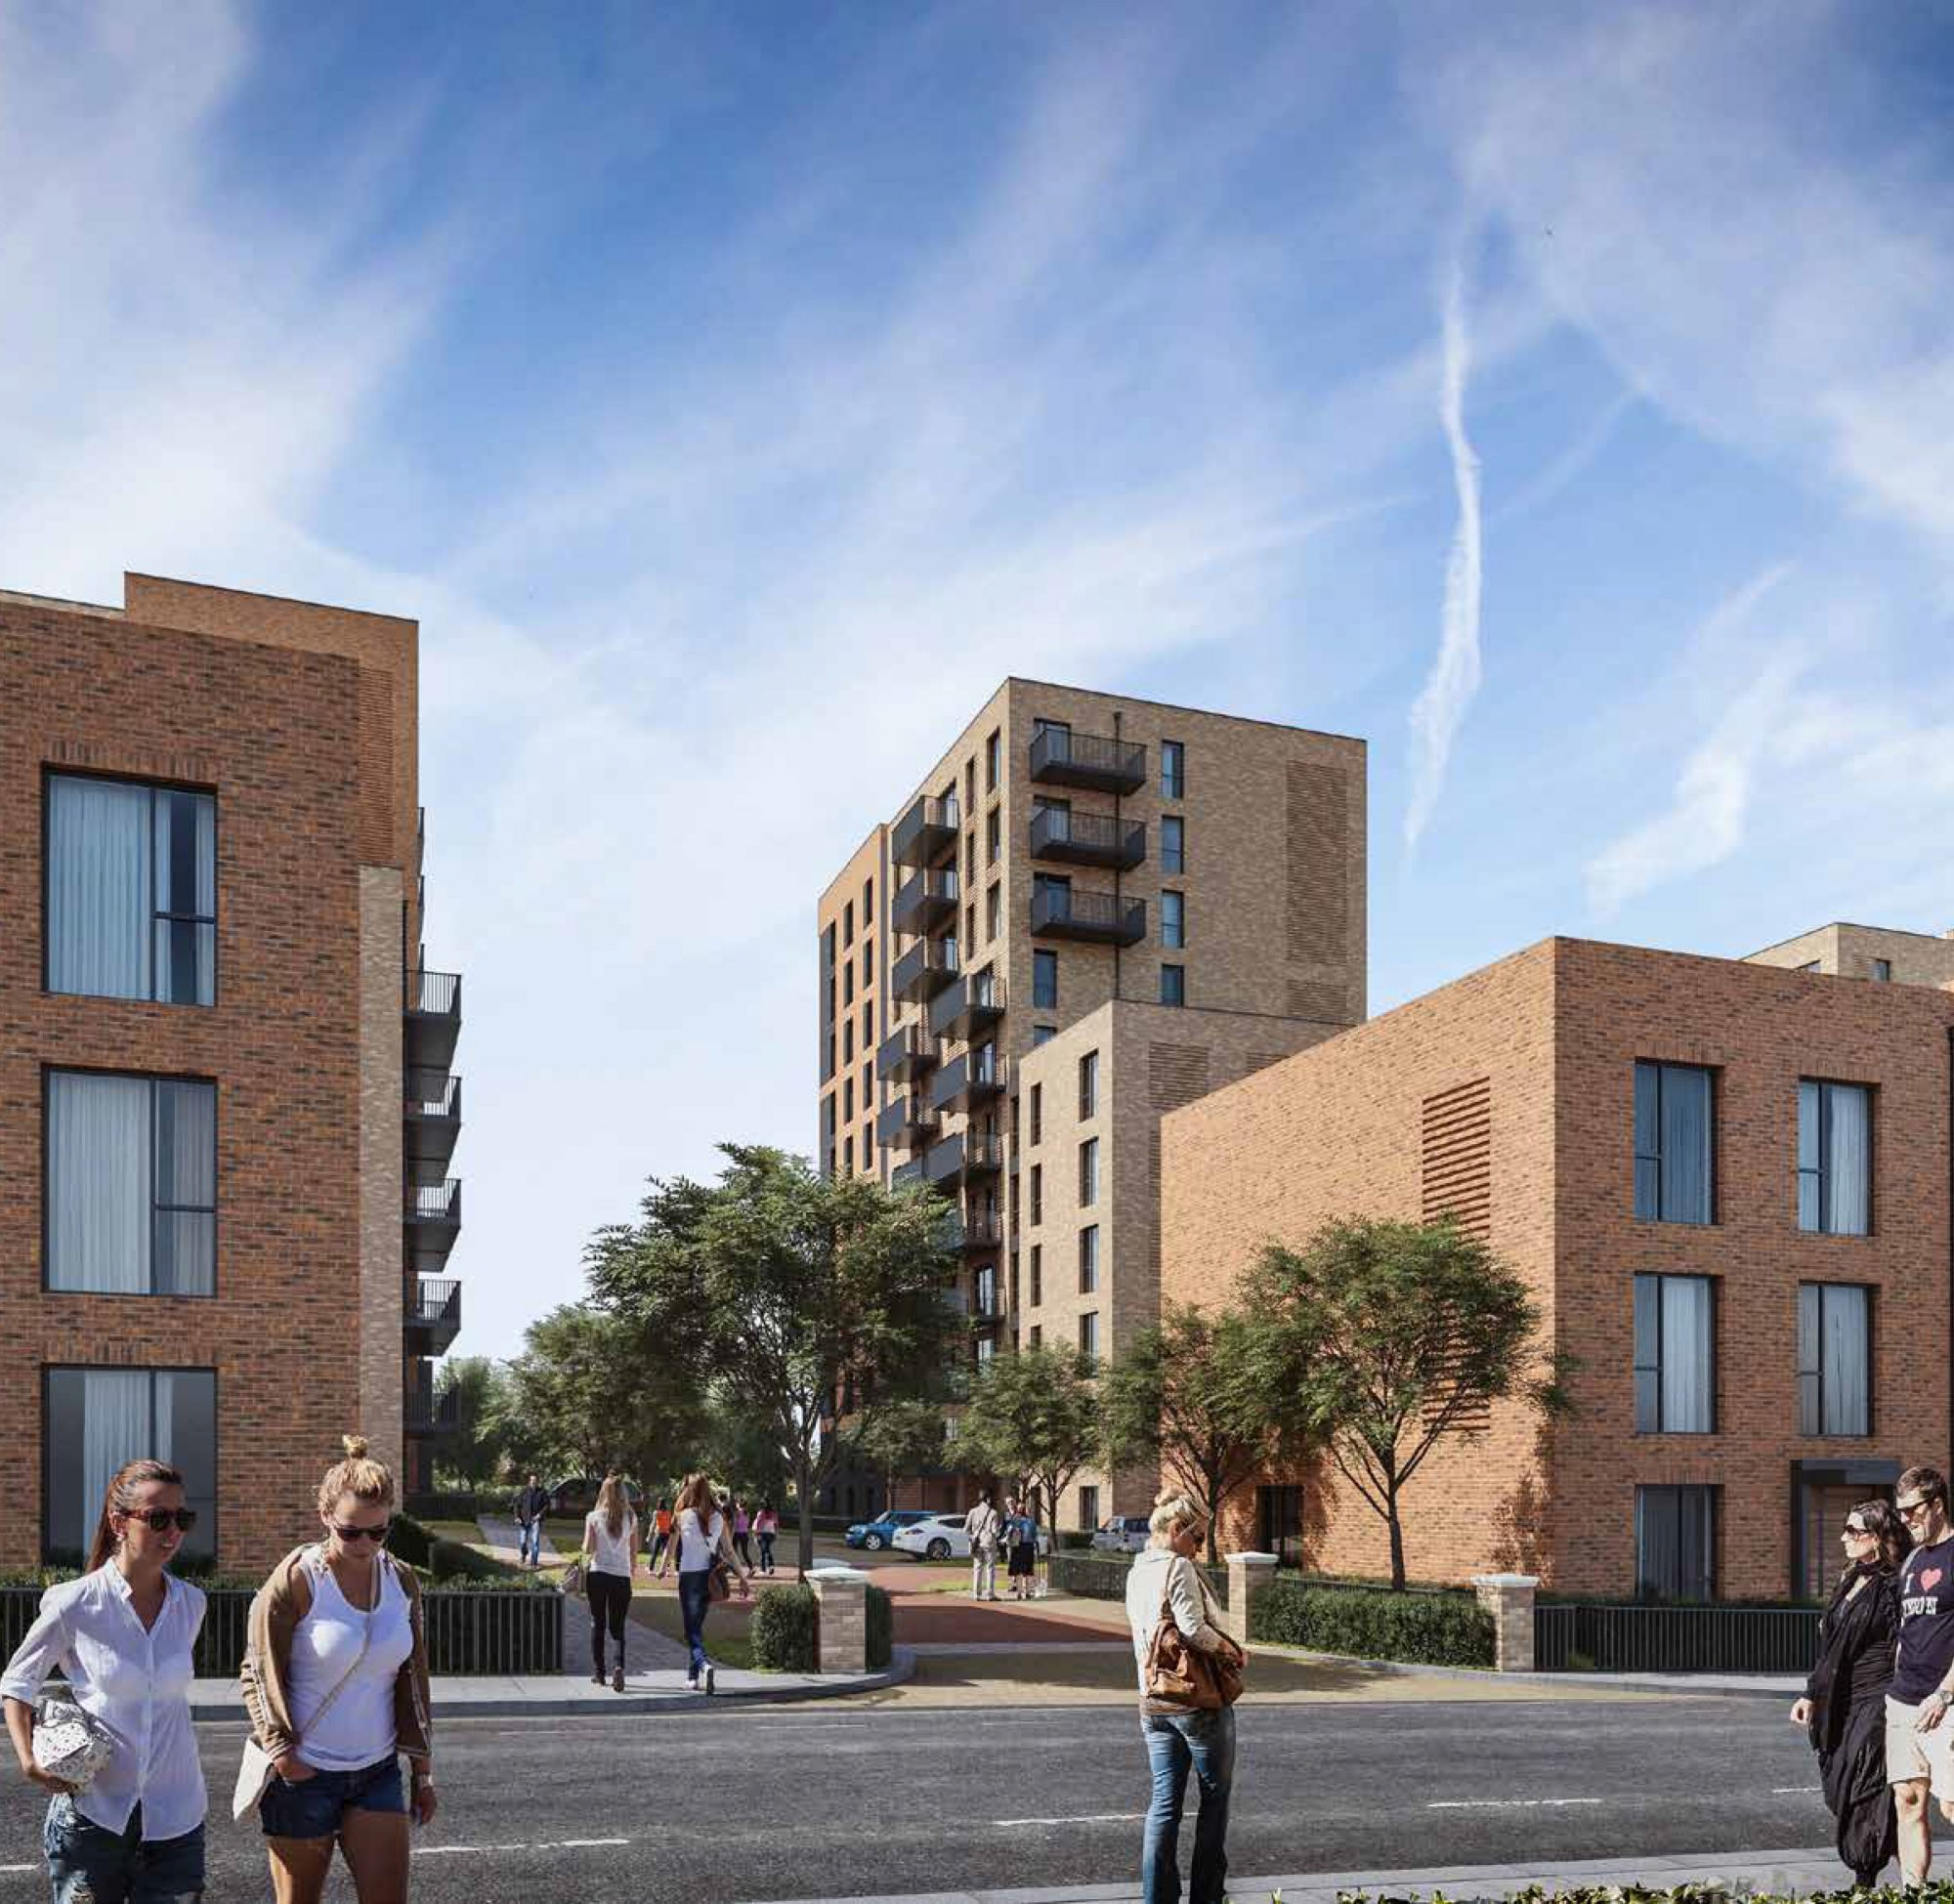 Weston Homes To Transform Watford Laundry Factory Into 227